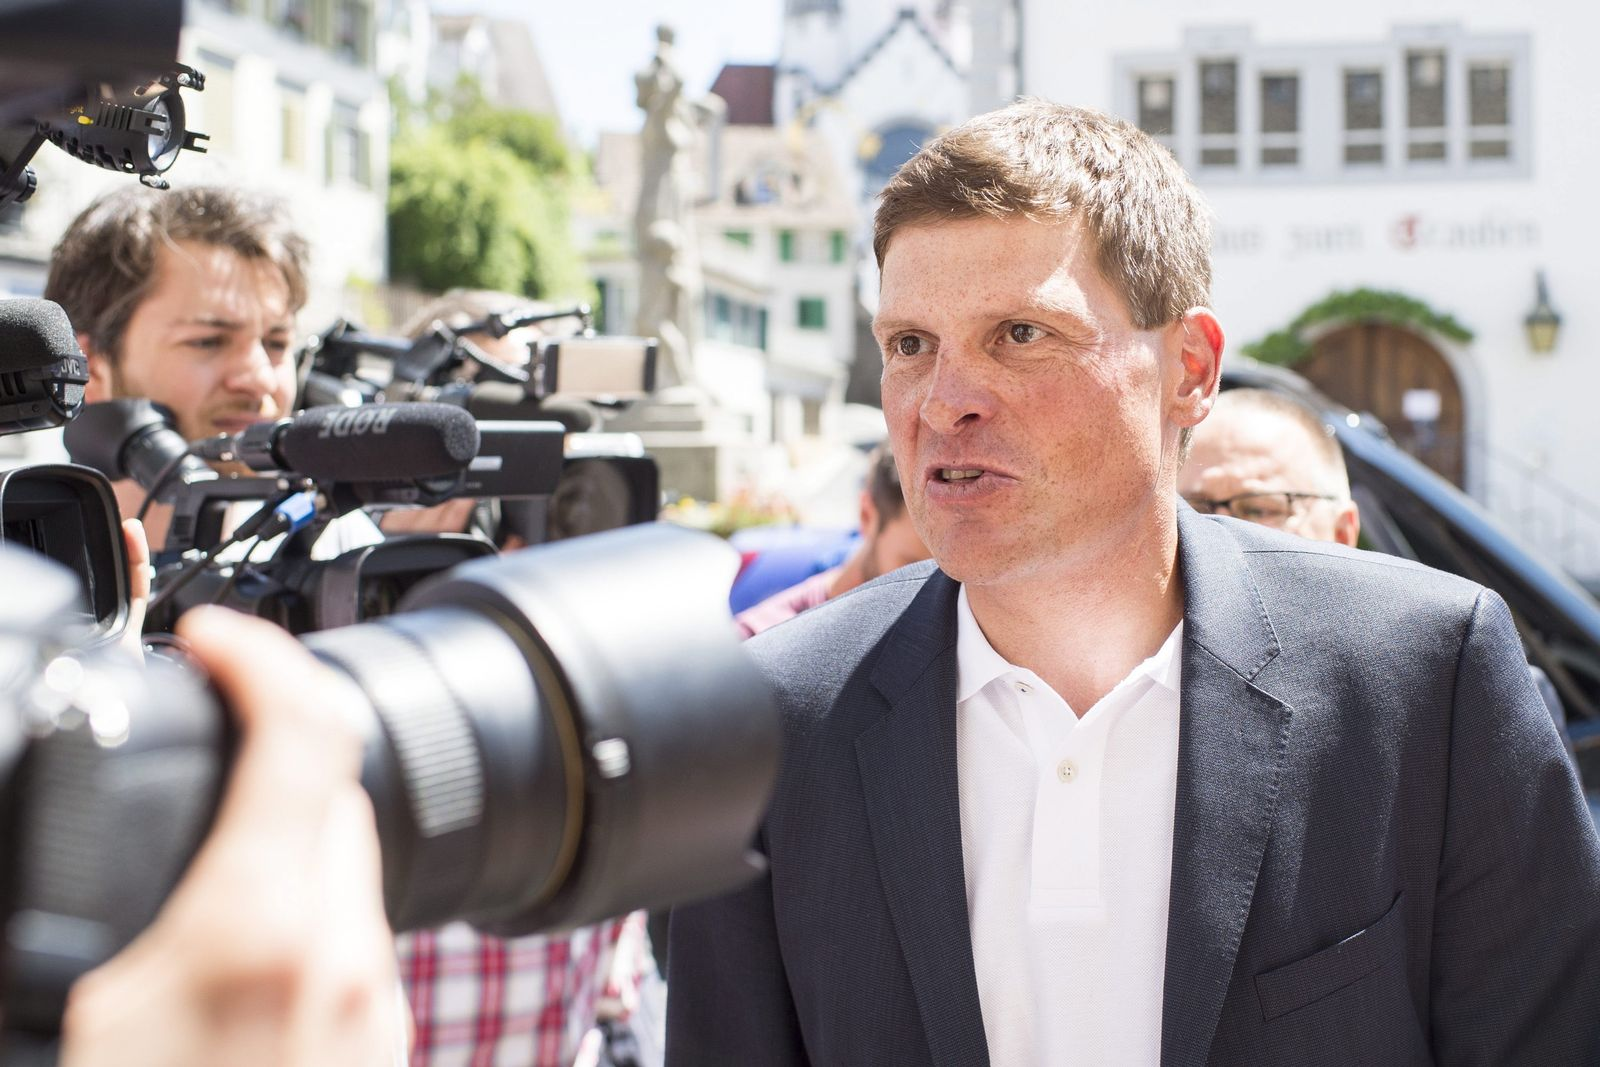 Former road cycler racer Jan Ullrich in trial on car accident